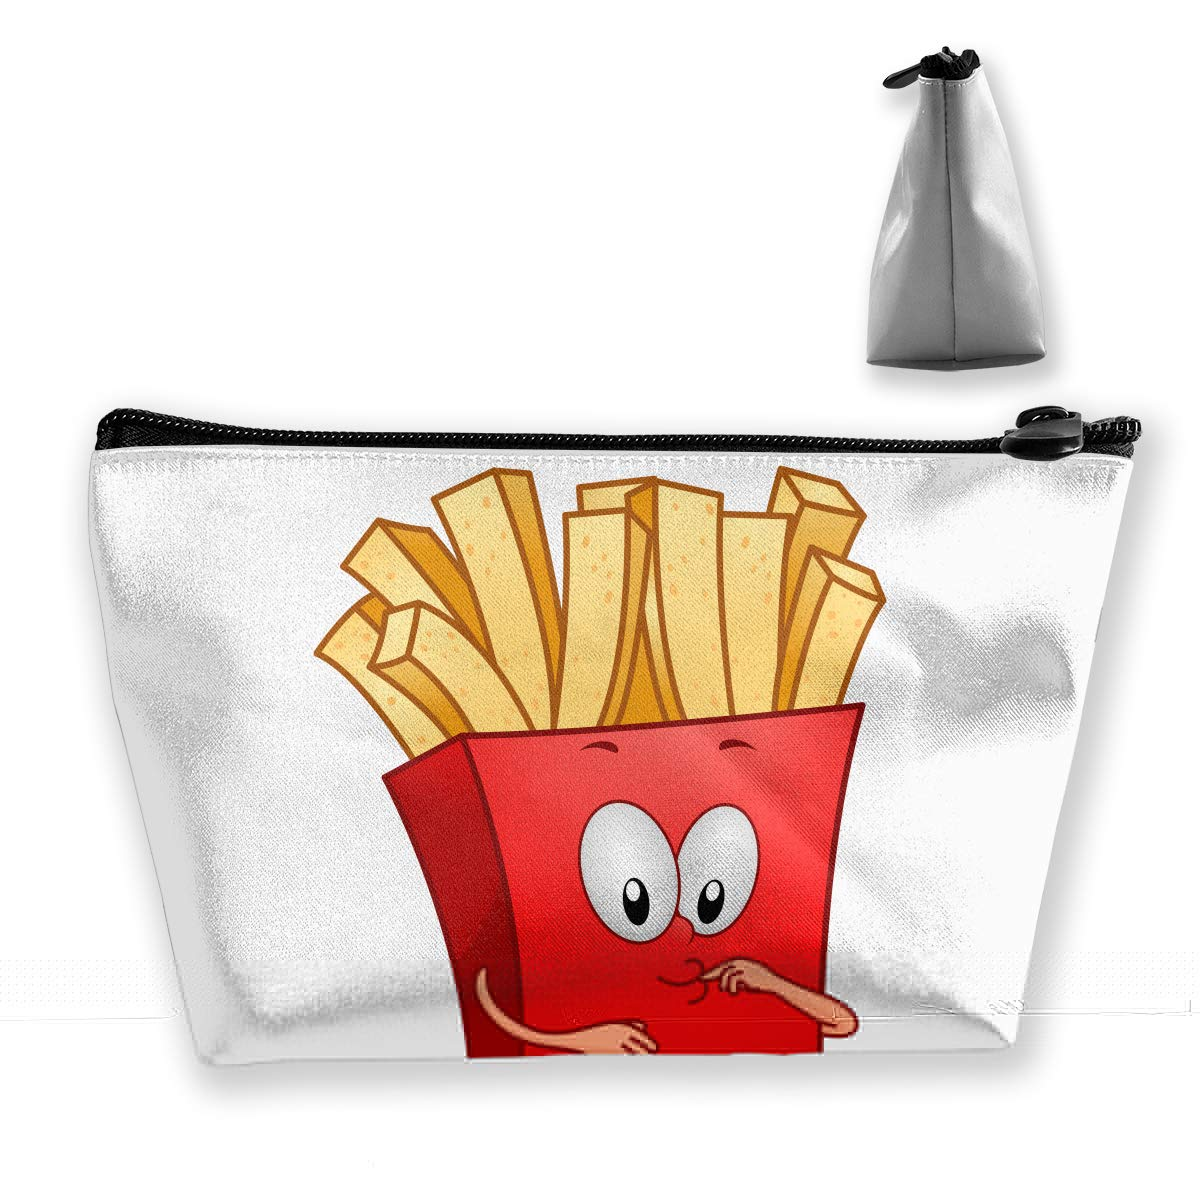 Trapezoid Toiletry Pouch Portable Travel Bag Fries Cartoon Zipper Wallet